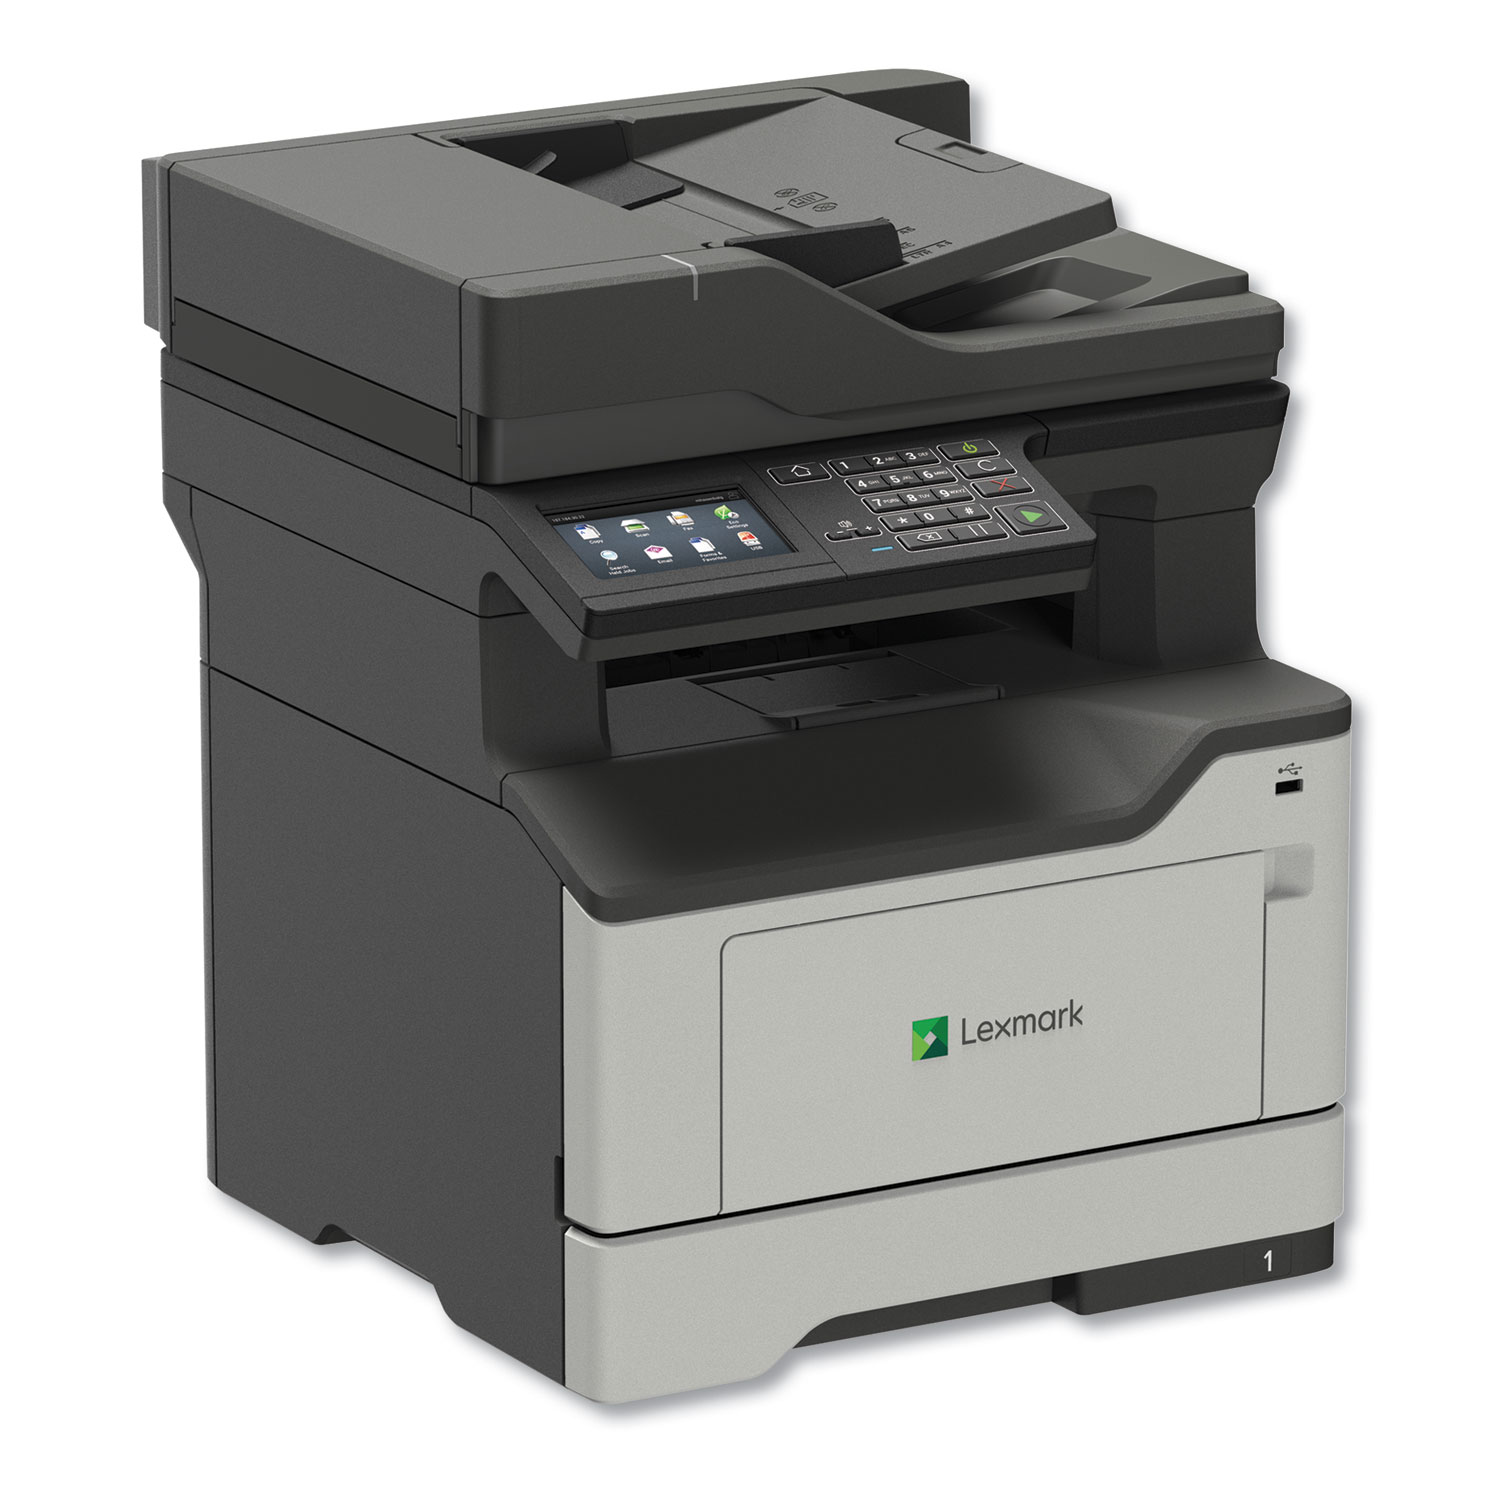 MB2650adwe Multifunction Printer, Copy/Fax/Print/Scan